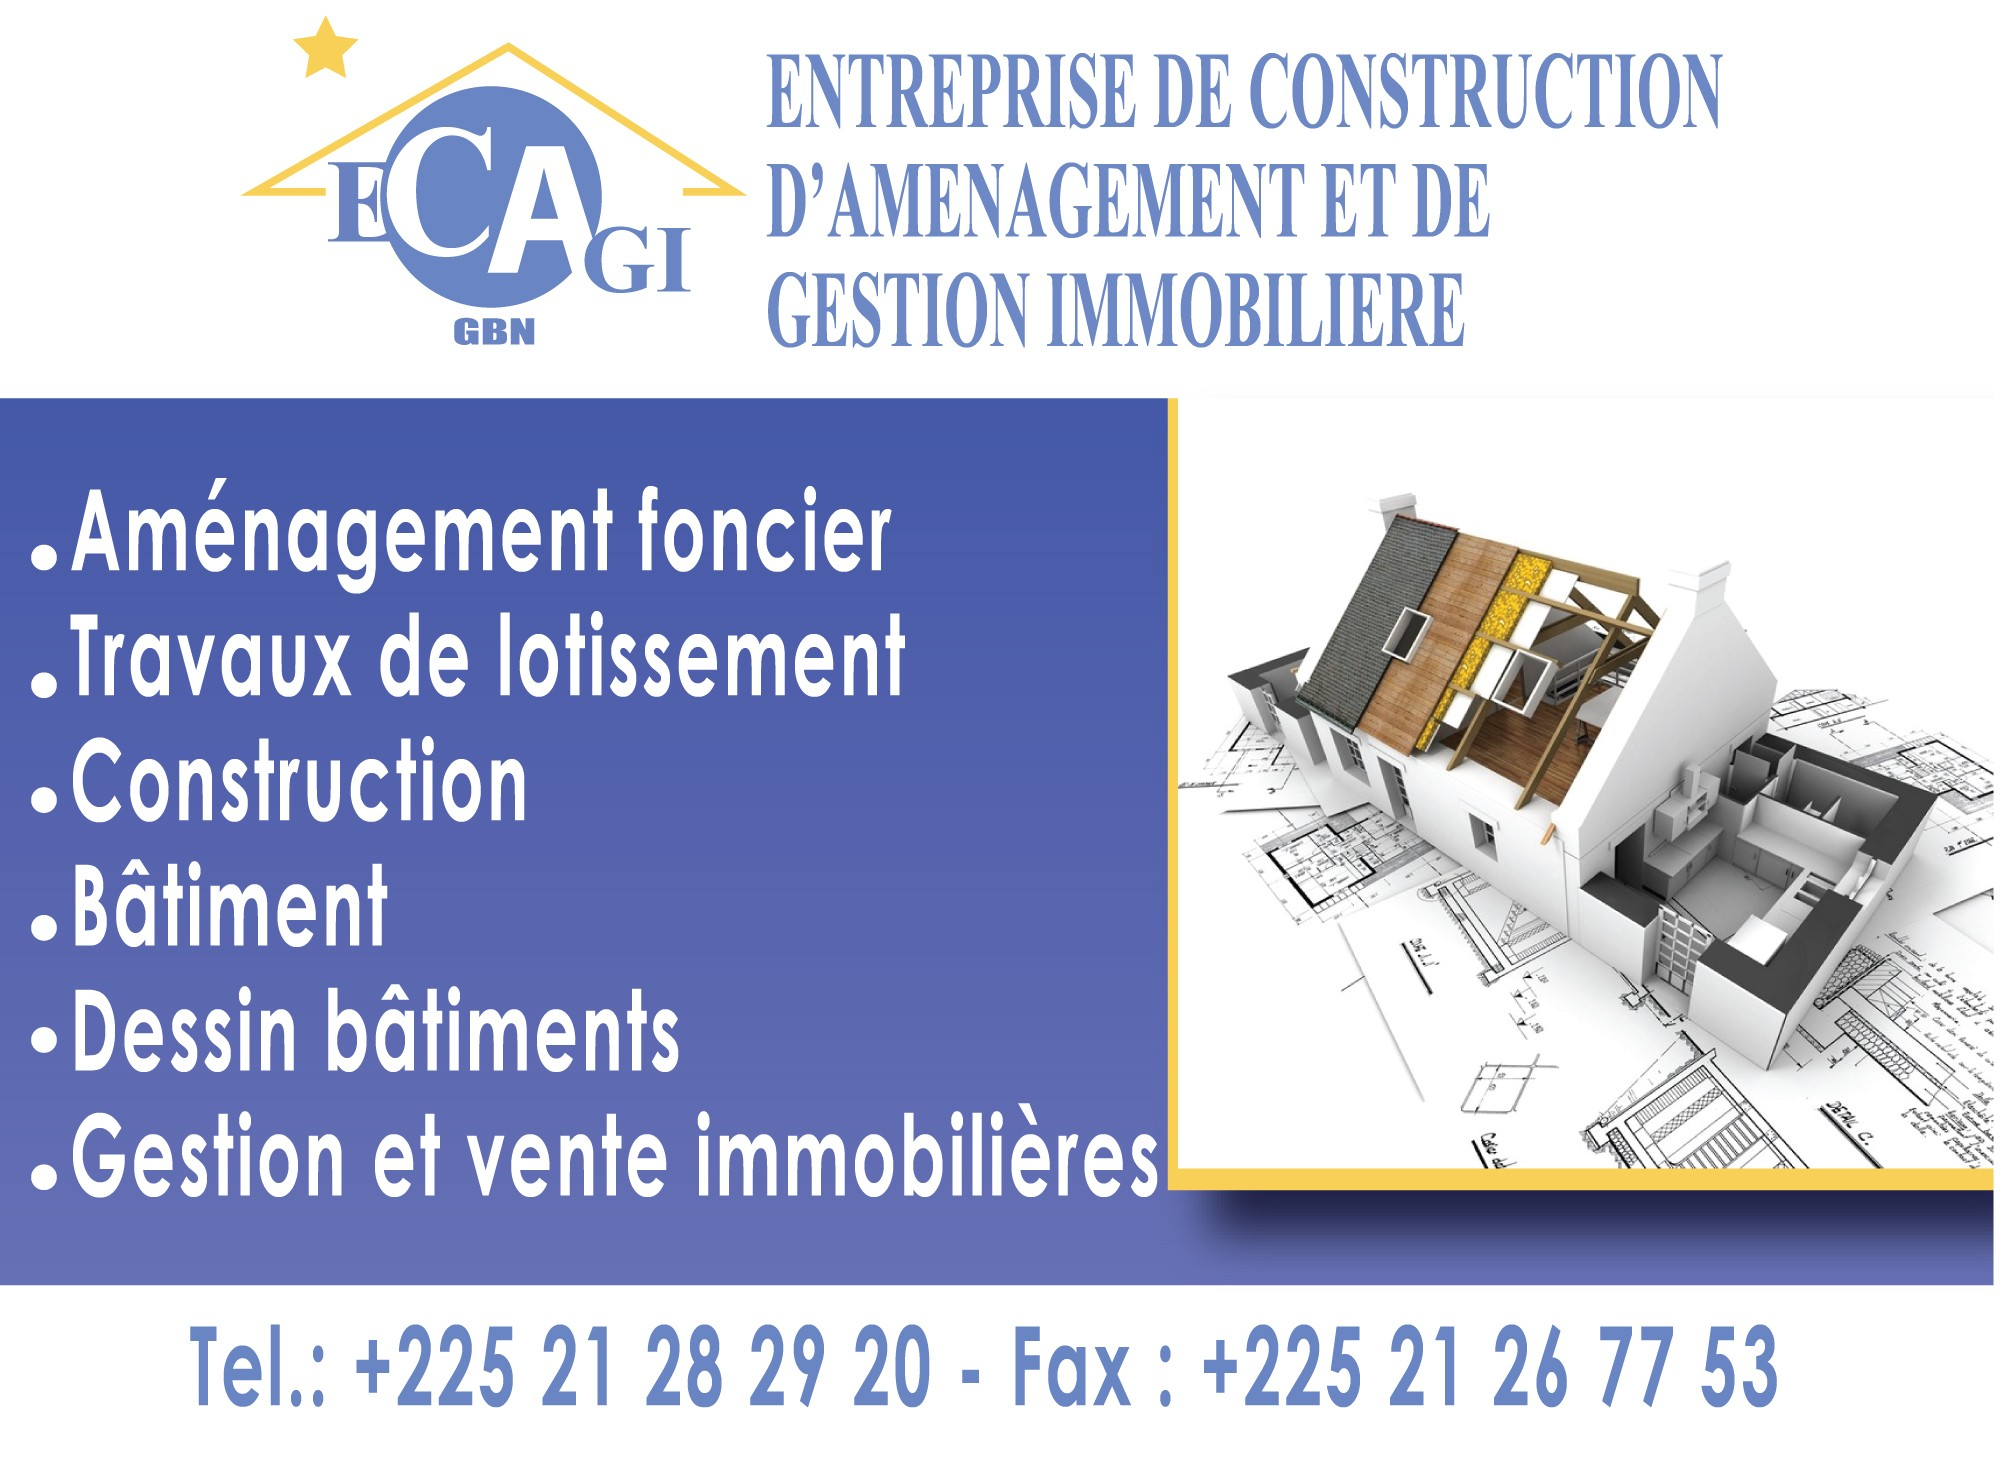 Ecagi entreprise de construction d 39 amenagement et de for Construction immobiliere